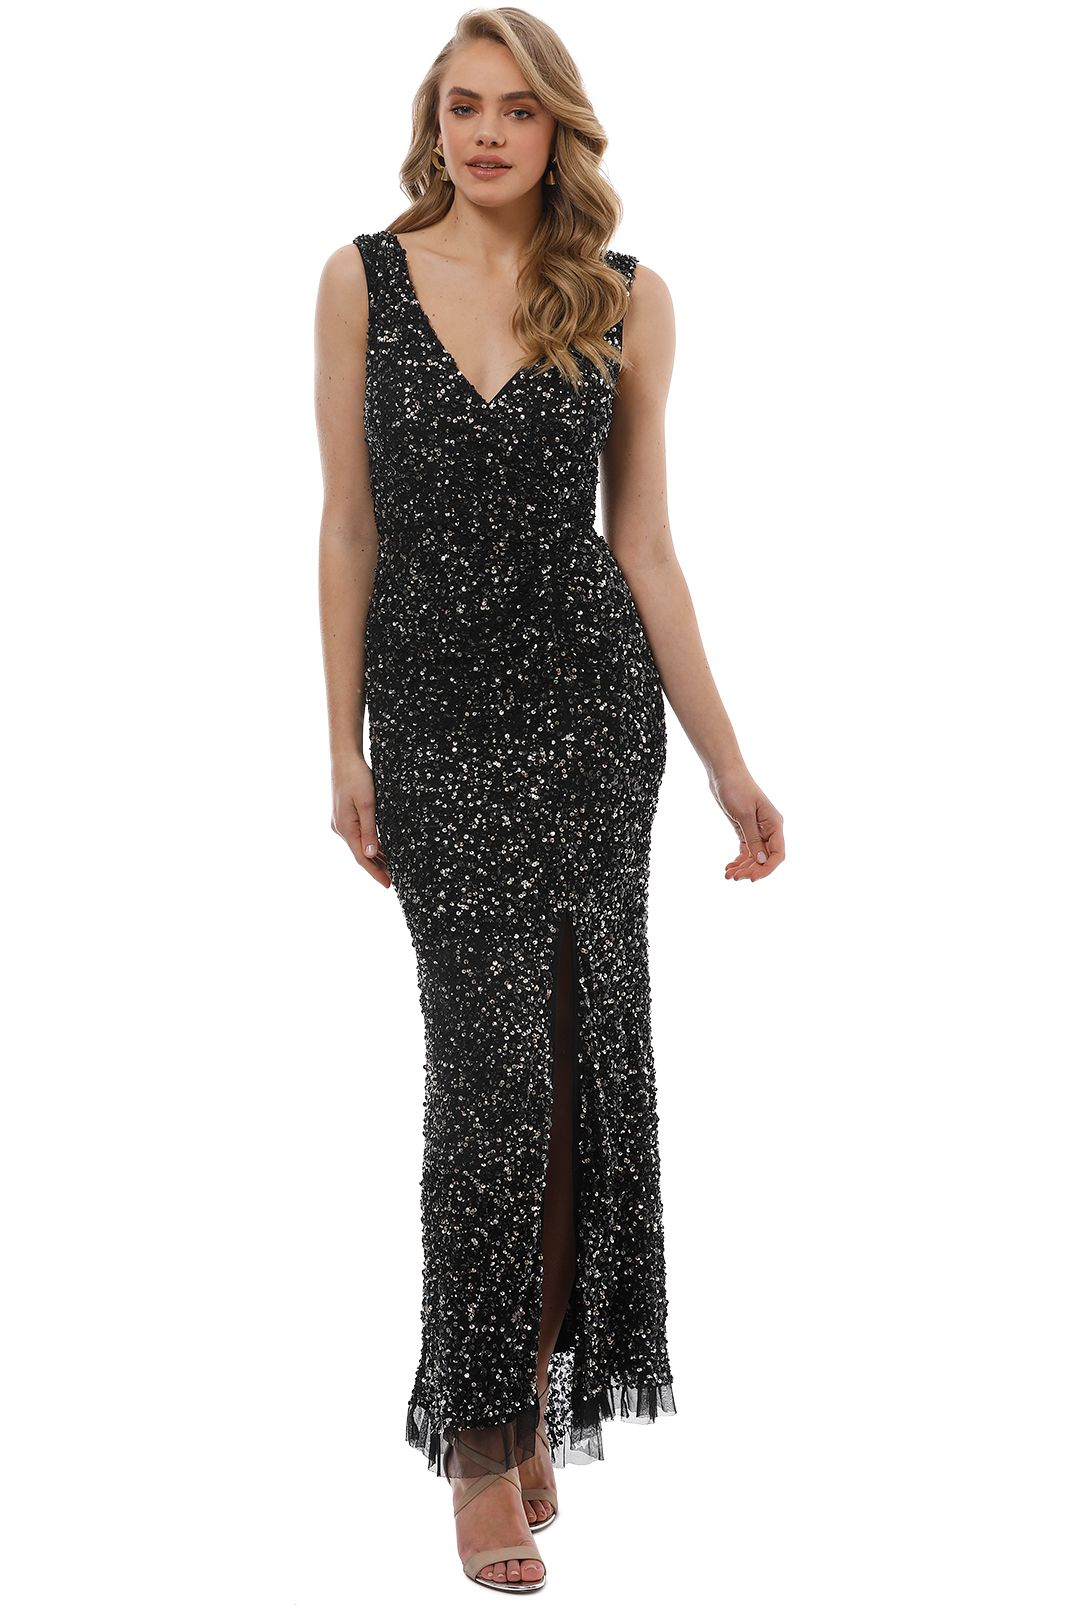 Montique - Layla Hand Beaded Dress - Gold Sequin - Front